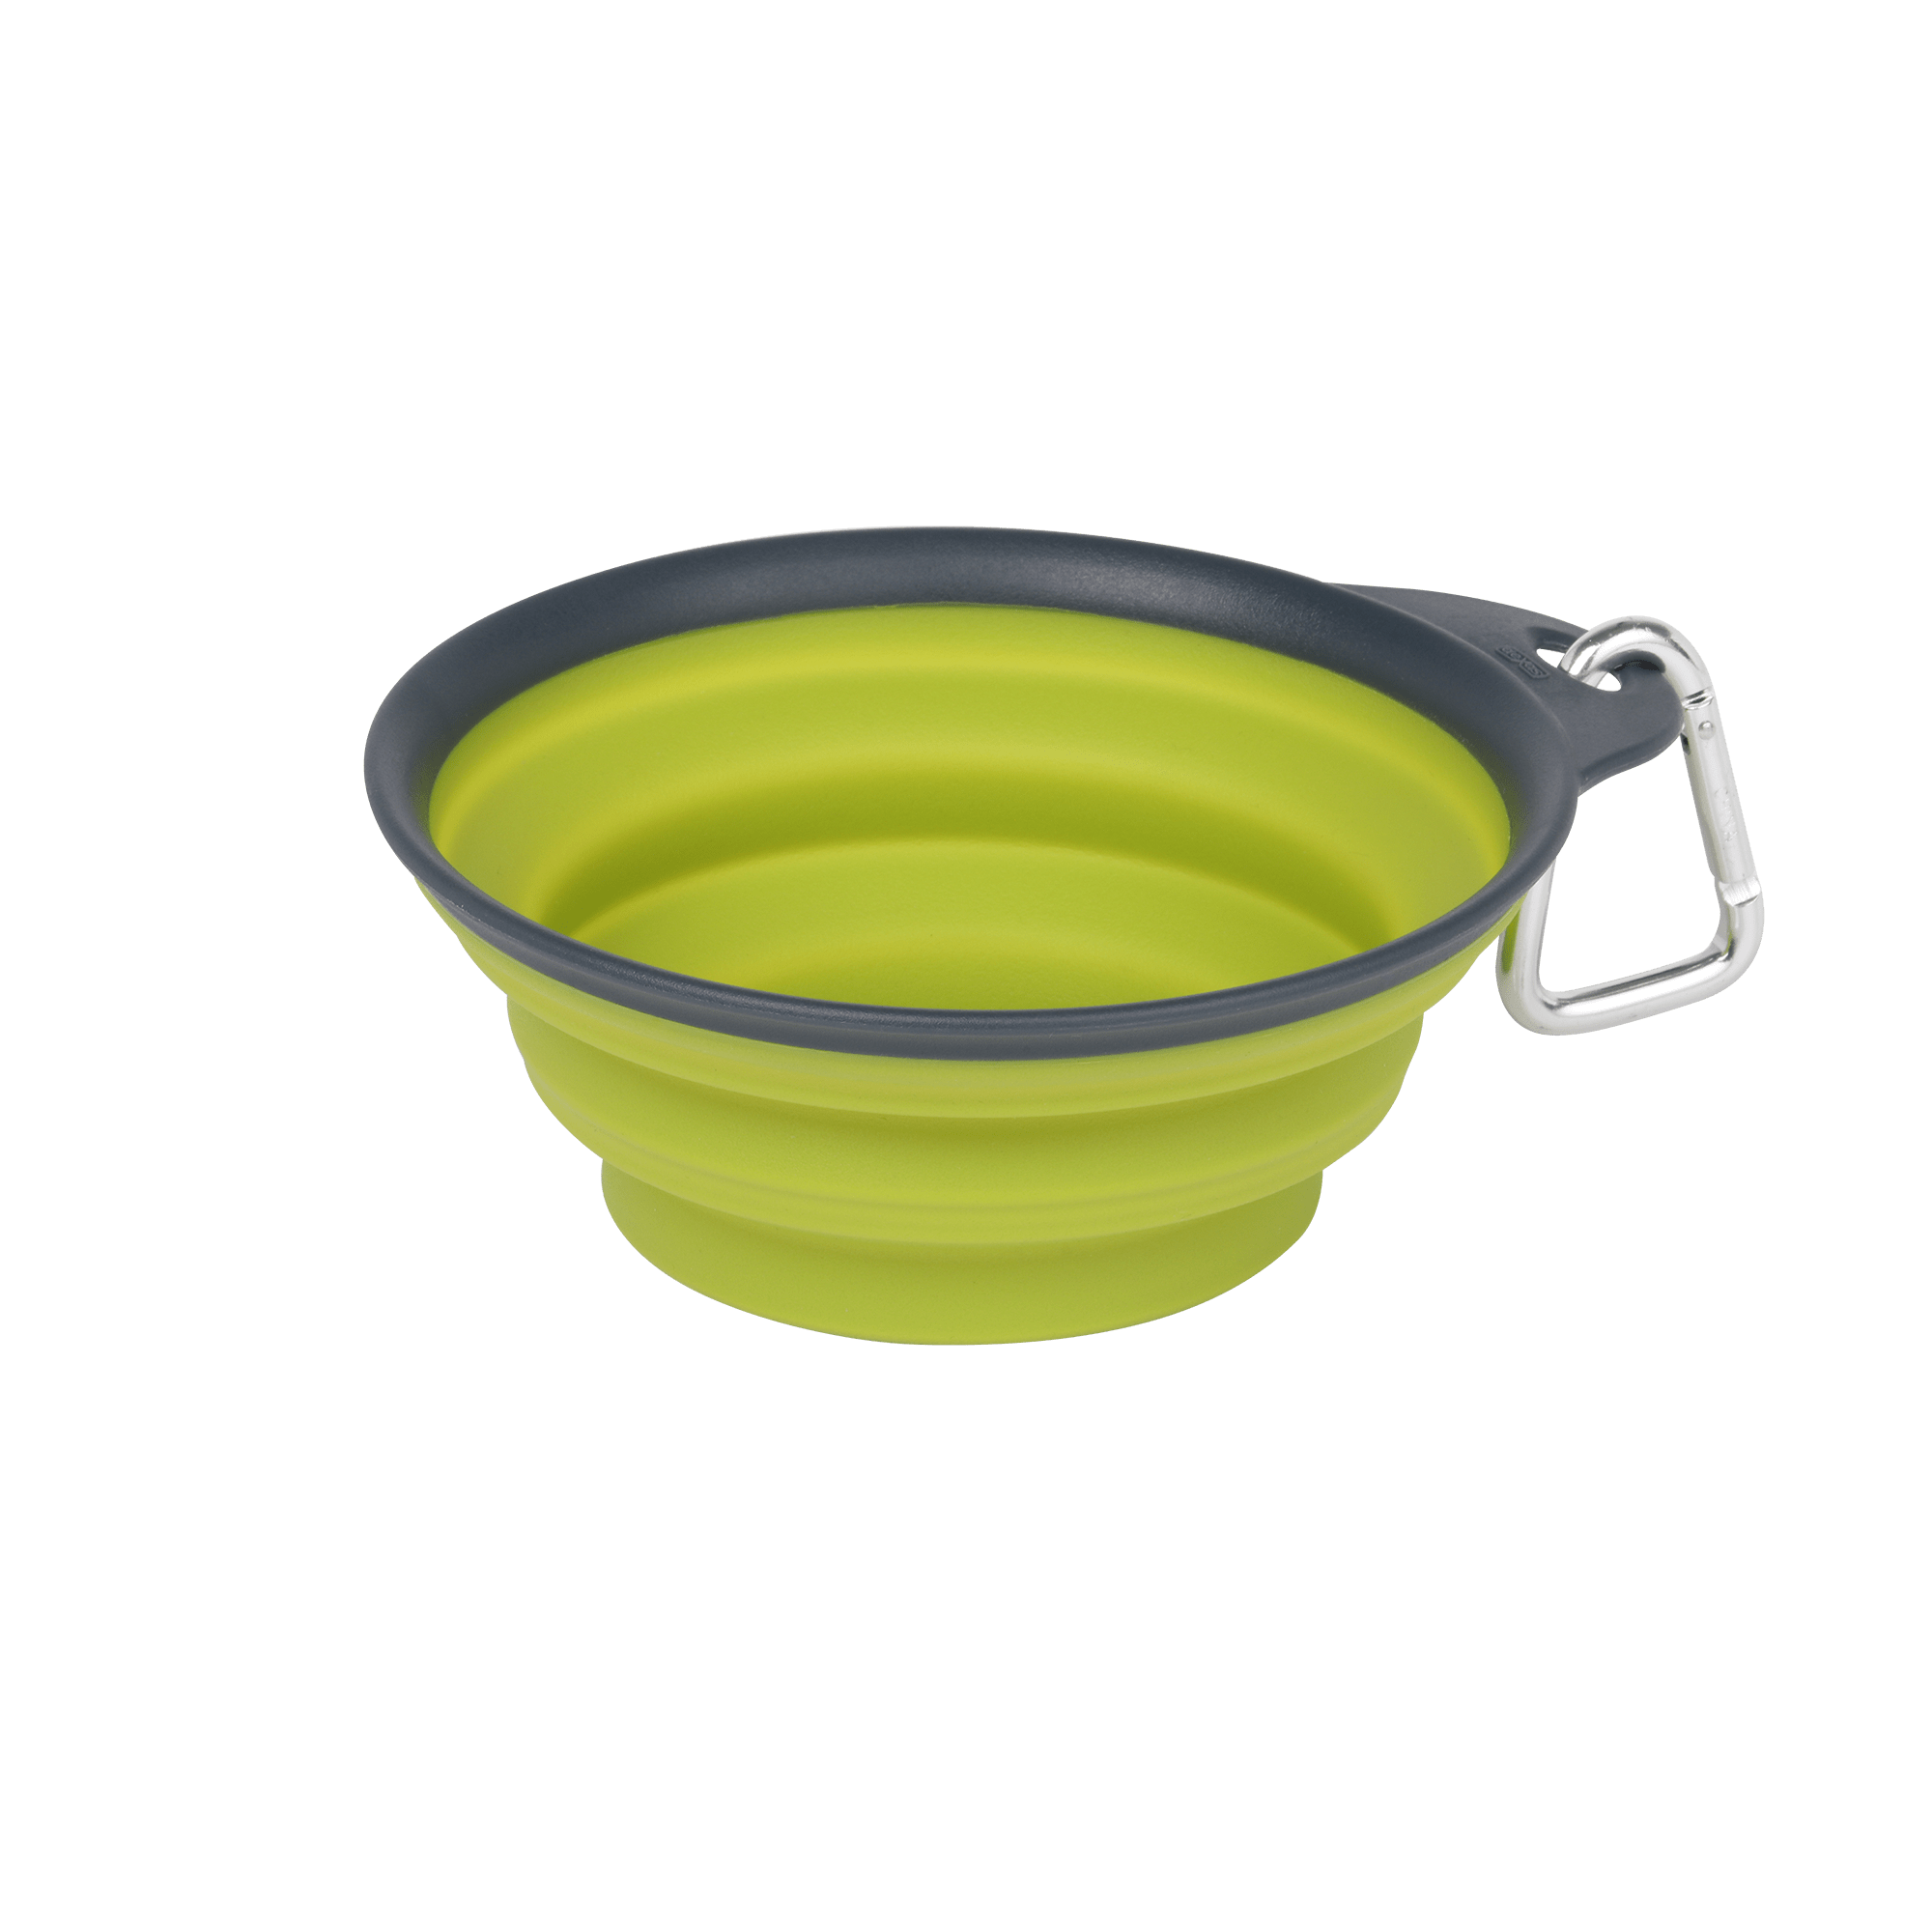 Dexas Collapsible Travel Cup with Carabiner, Small, Green / Grey